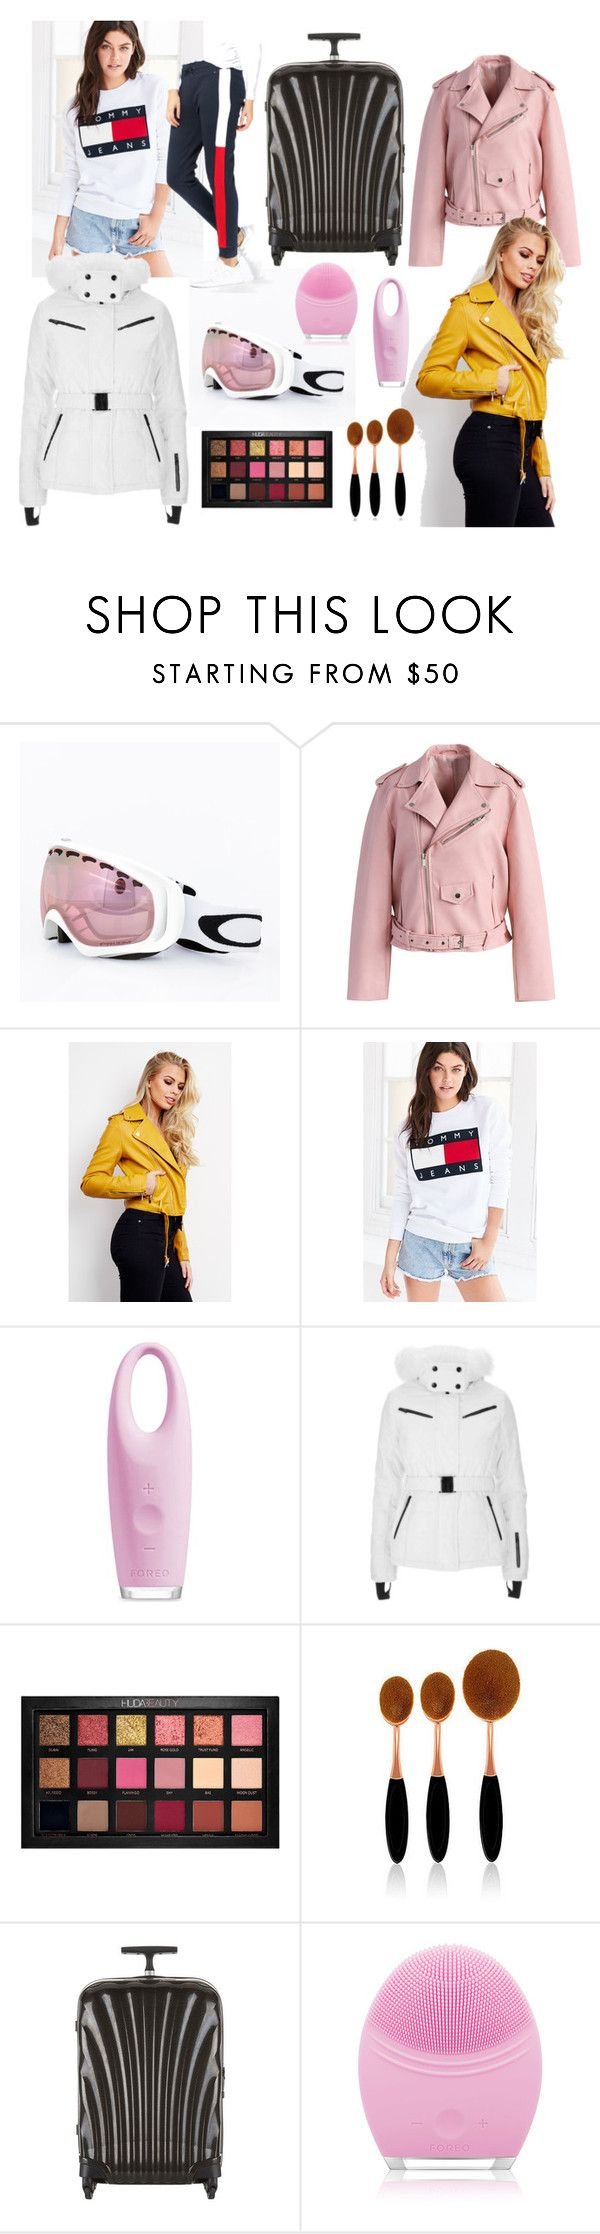 Cravings by saijis on Polyvore featuring Tommy Hilfiger, Topshop, Chicwish, Samsonite, Huda Beauty and FOREO